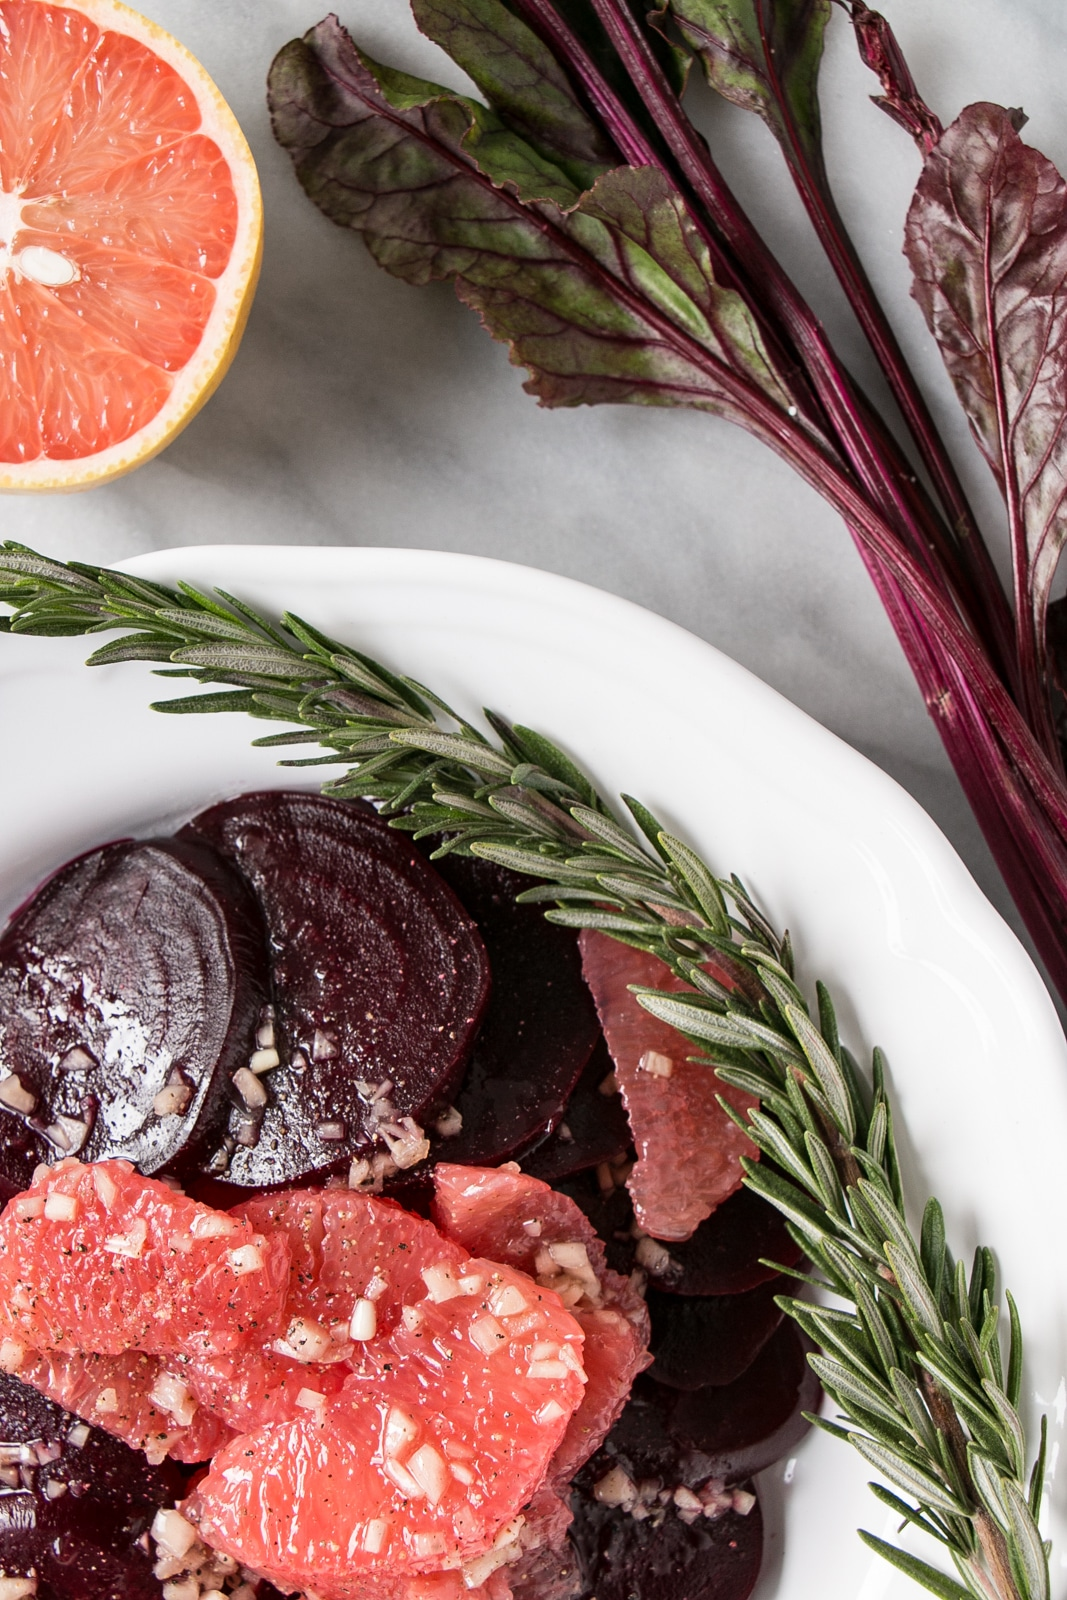 Rosemary Beet and Grapefruit Salad with a Shallot Vinaigrette is a great makes ahead winter salad! #salad #beets